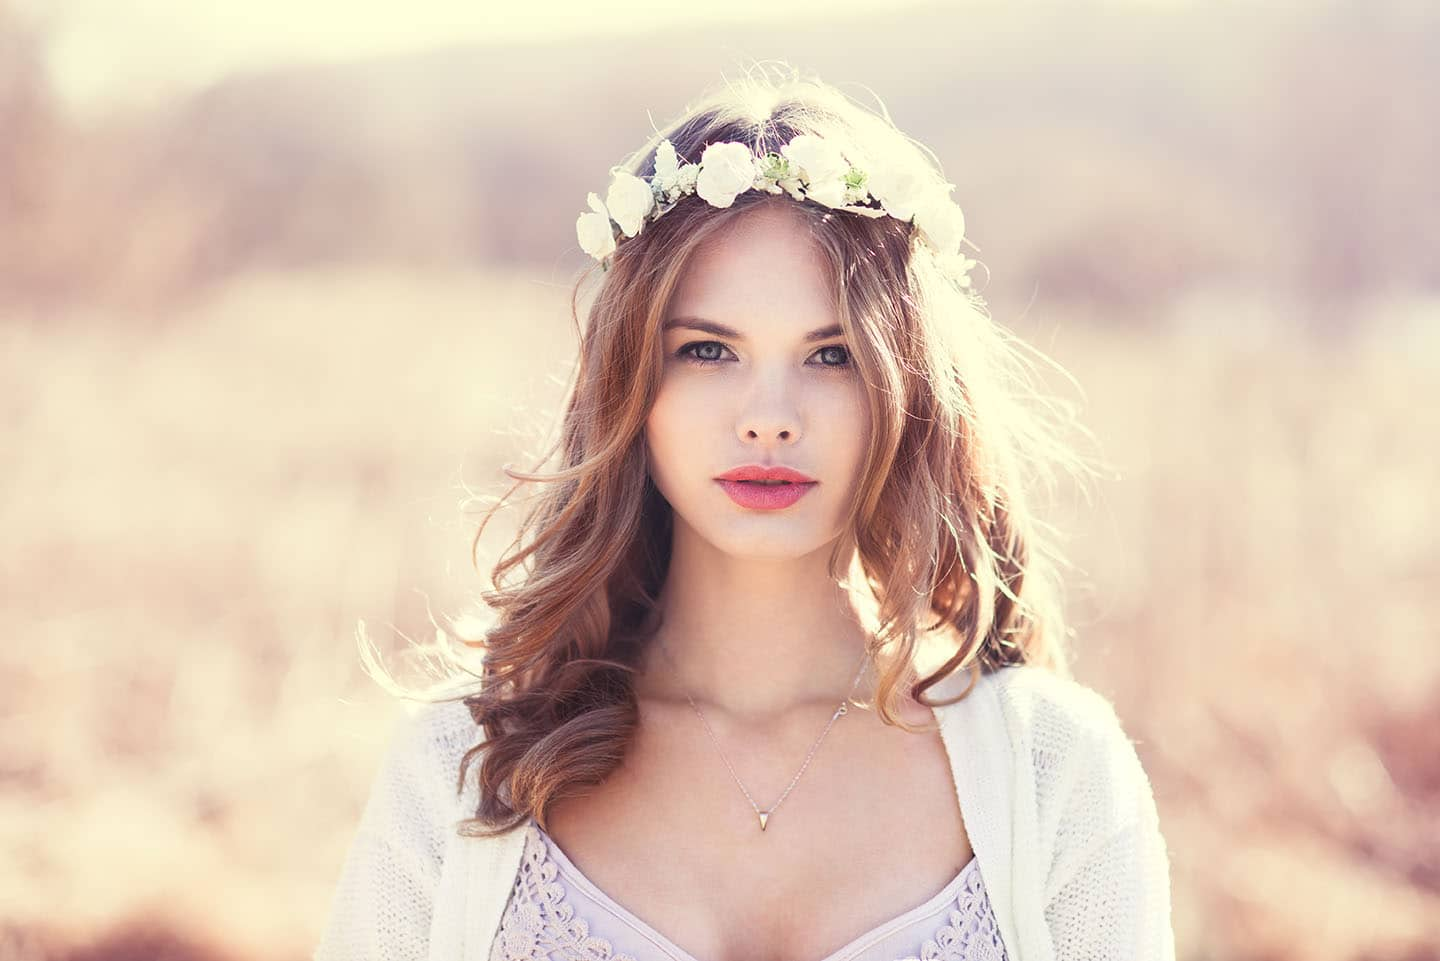 Floral crowns to complete bridal hairstyles makeup in the 702 floral crowns a perfect for any season and bring a fresh twist to any wedding hairstyle izmirmasajfo